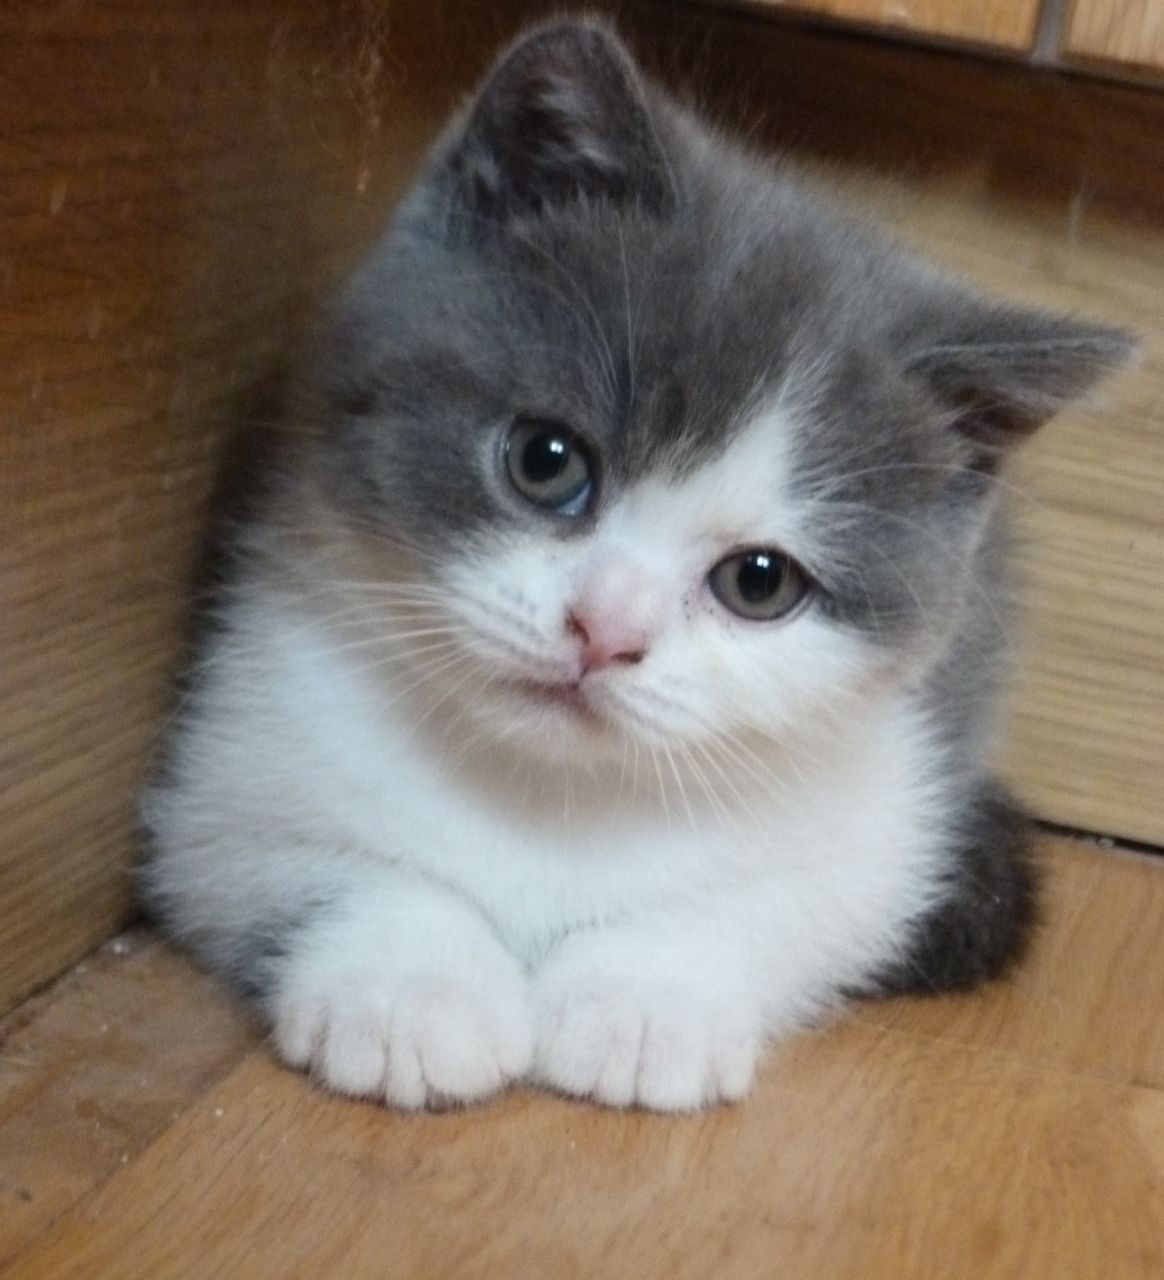 British Shorthair Kittens Cute Image 6600 Kittens Cutest Cute Baby Animals Cute Cats